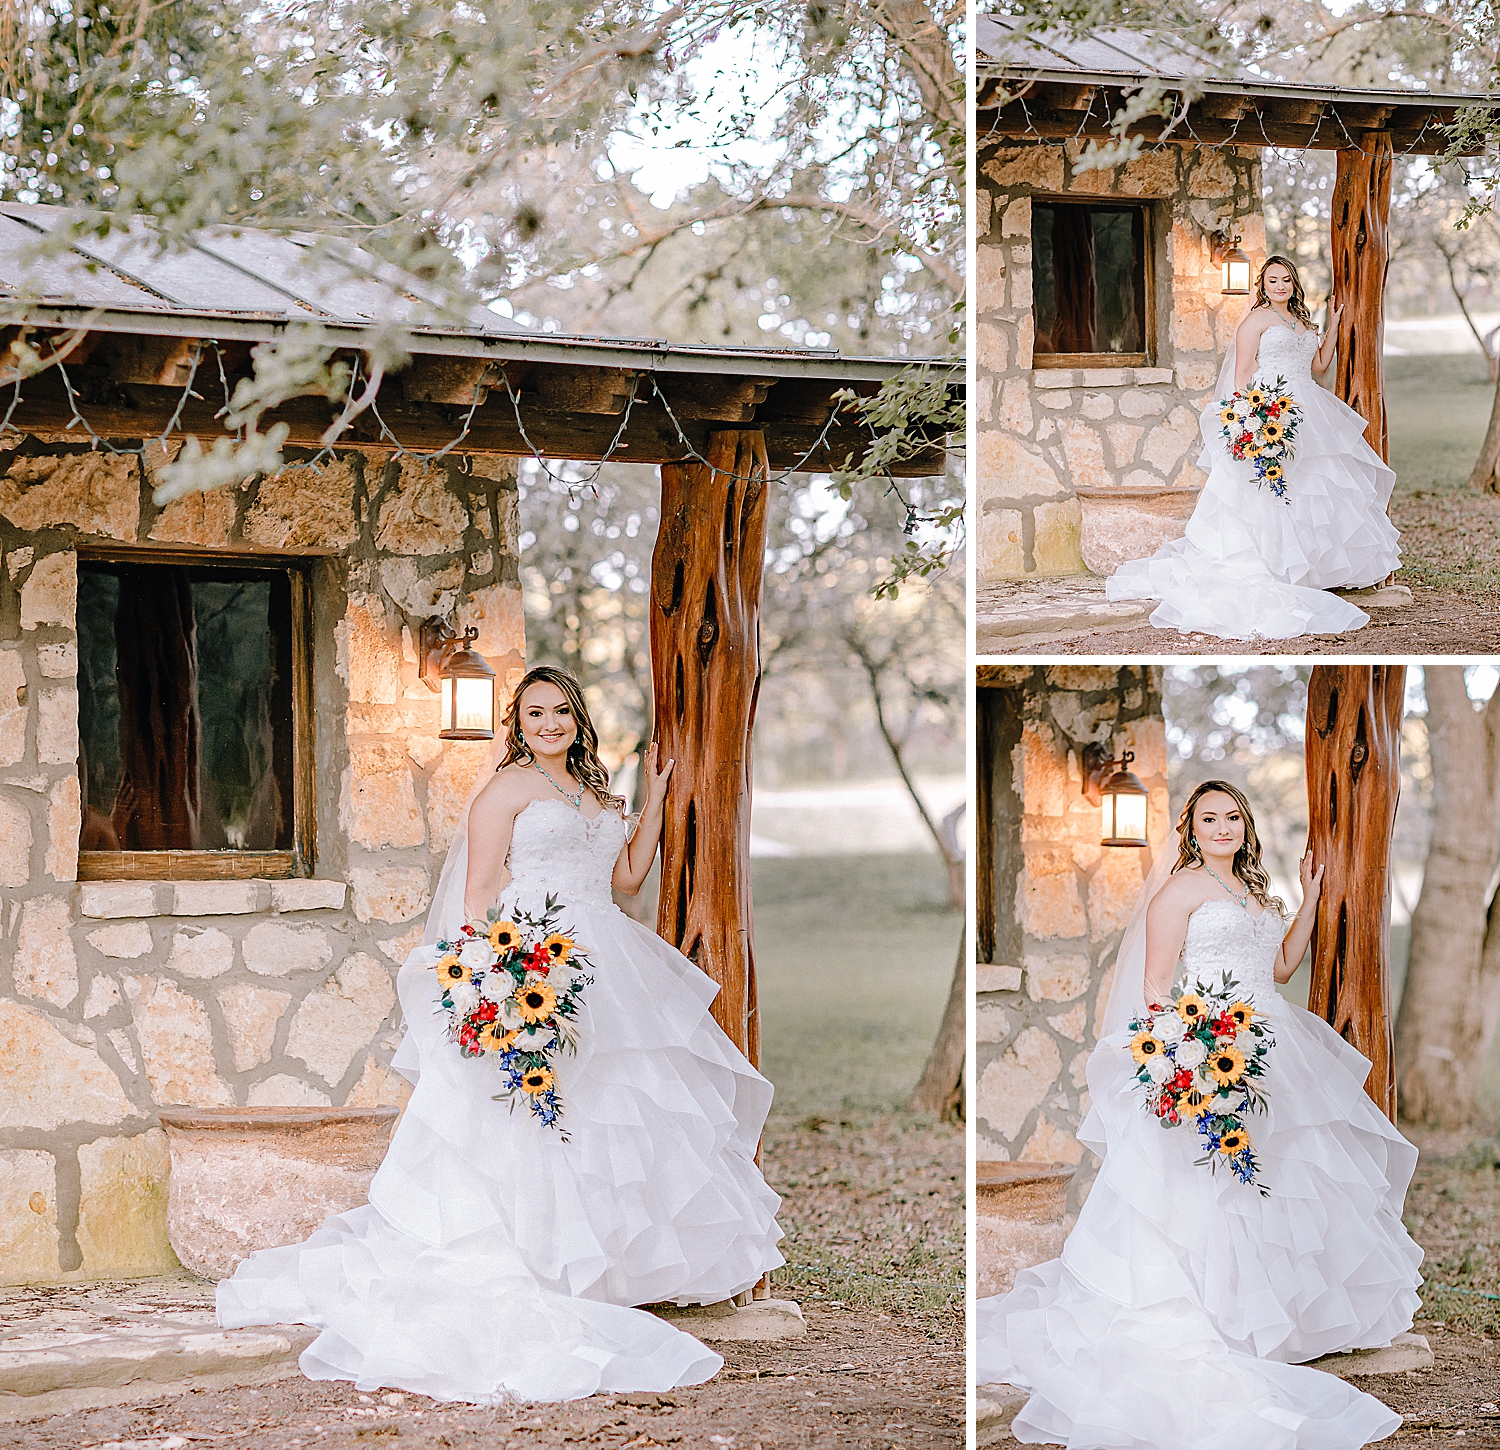 Carly-Barton-Photography-Texas-Bridals-Boerne-Rustic-Wedding-Photos_0013.jpg